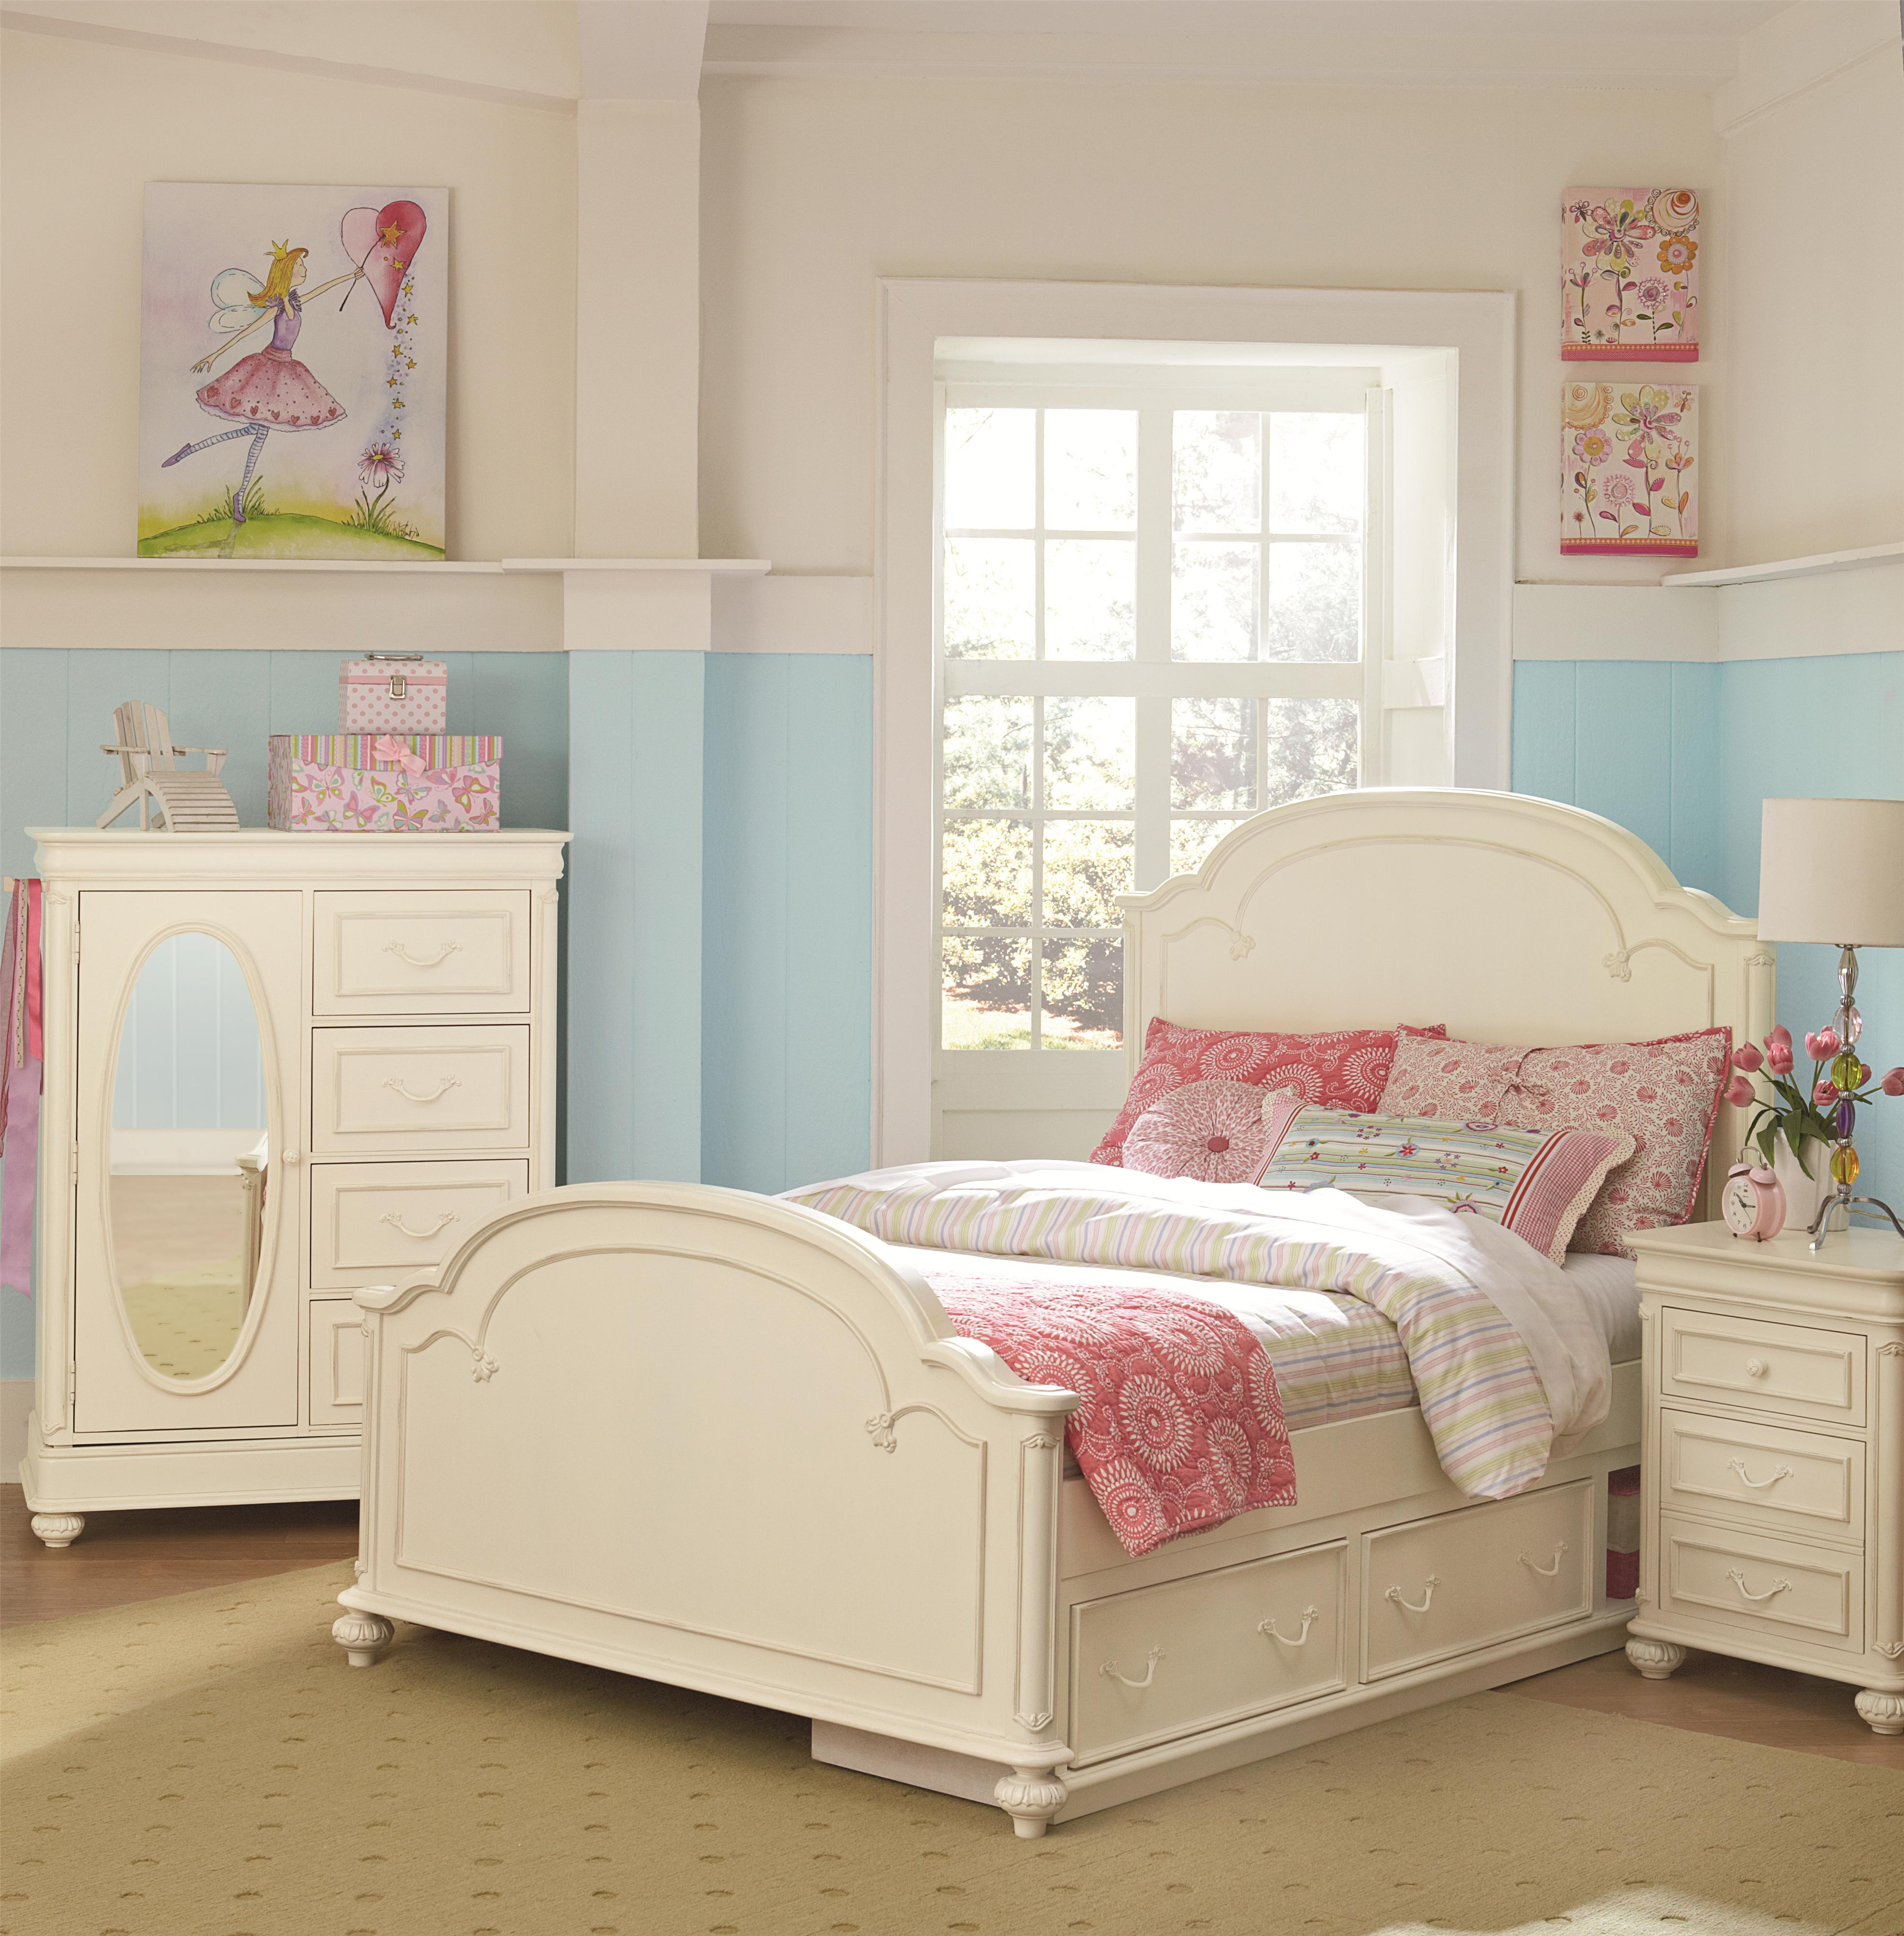 Rich Caramel Finish Classic Bedroom Set W Options: Full Arched Panel Headboard By Legacy Classic Kids